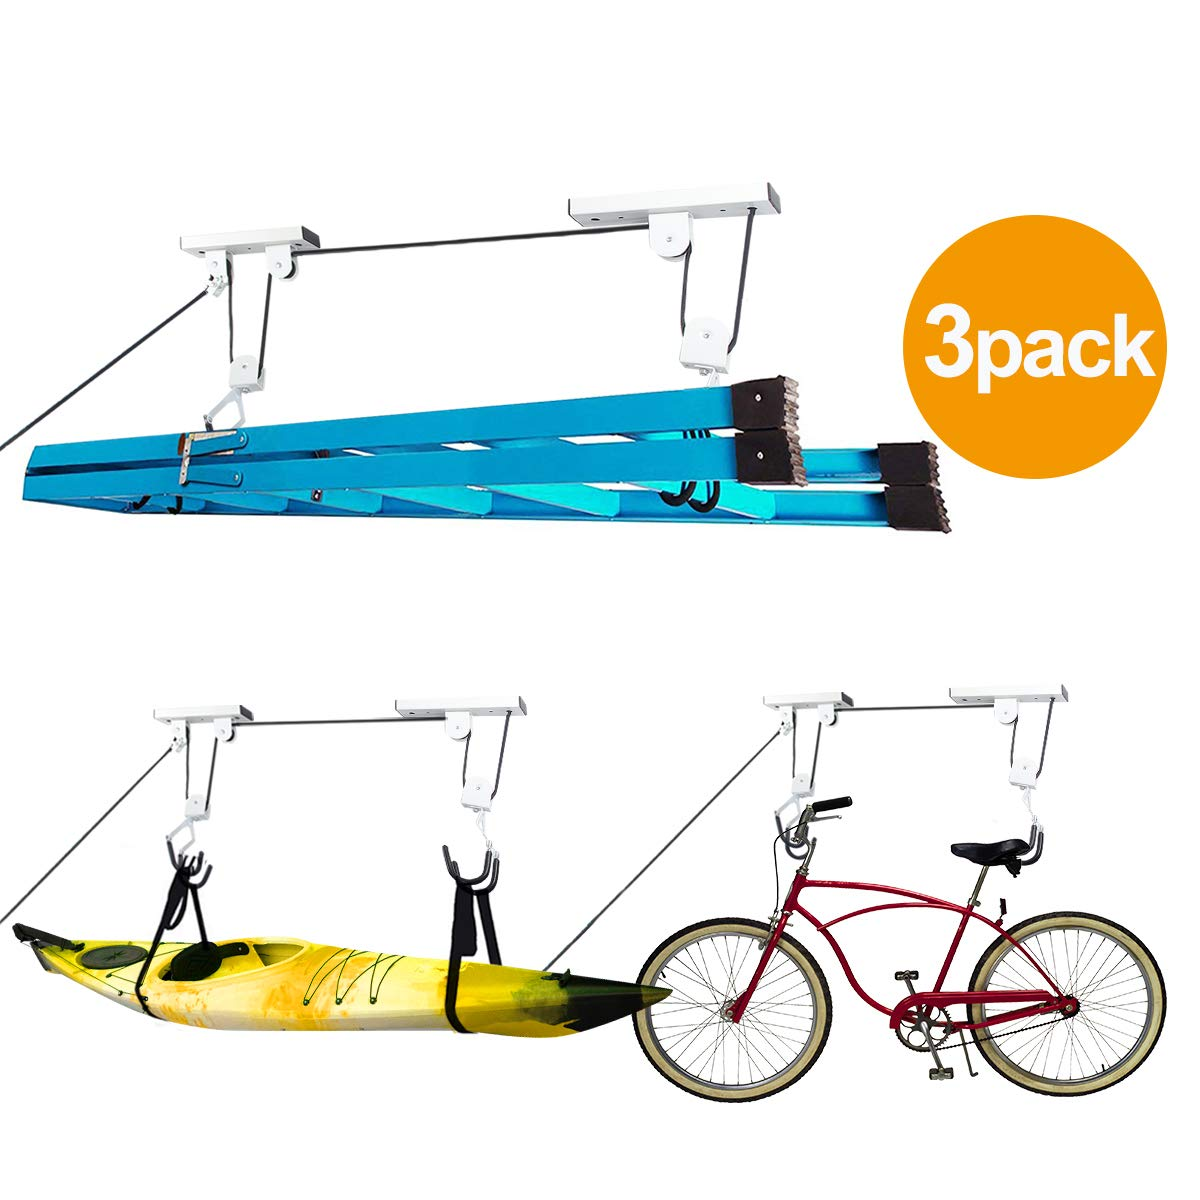 Oeyal Bike Lift Hoist for Garage Storage, Heavy Duty Kayak Canoe Ceiling Mount Hoists Pulley System 110lbs Capacity Pack of 3 (3 Pack Pro) by Oeyal